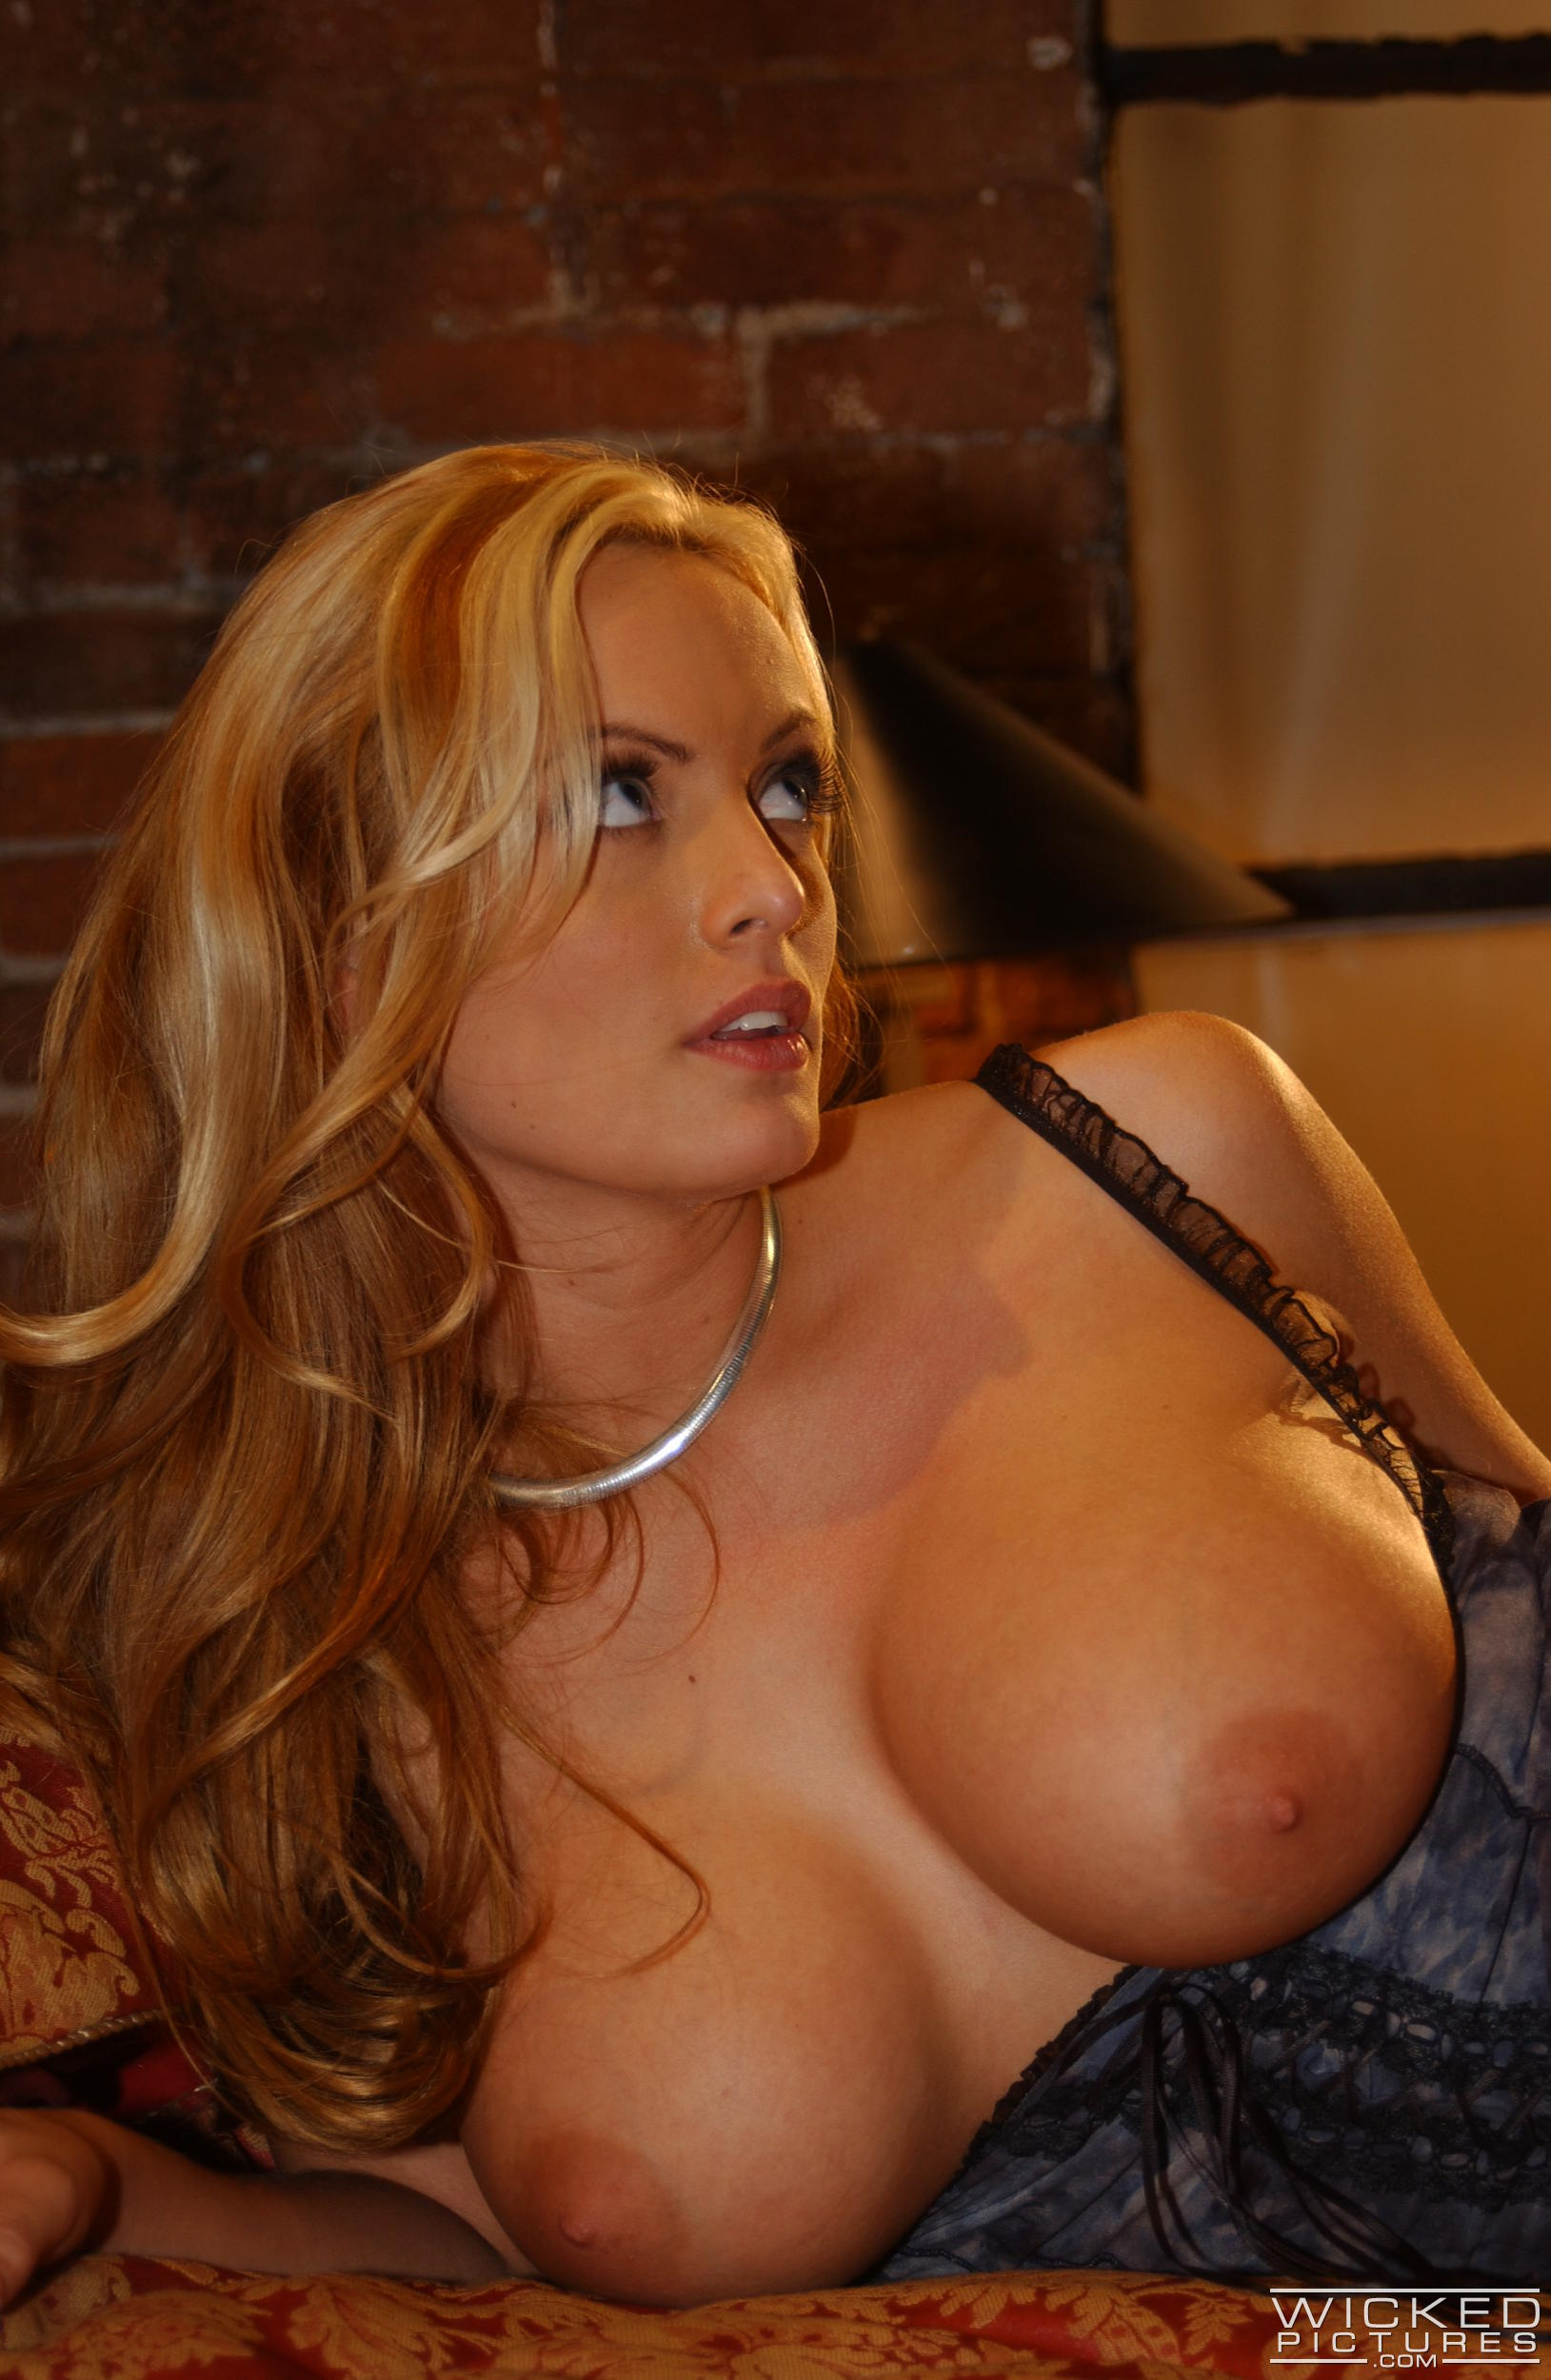 Wicked 'Not A Romance Scene 4' starring Stormy Daniels (Photo 36)